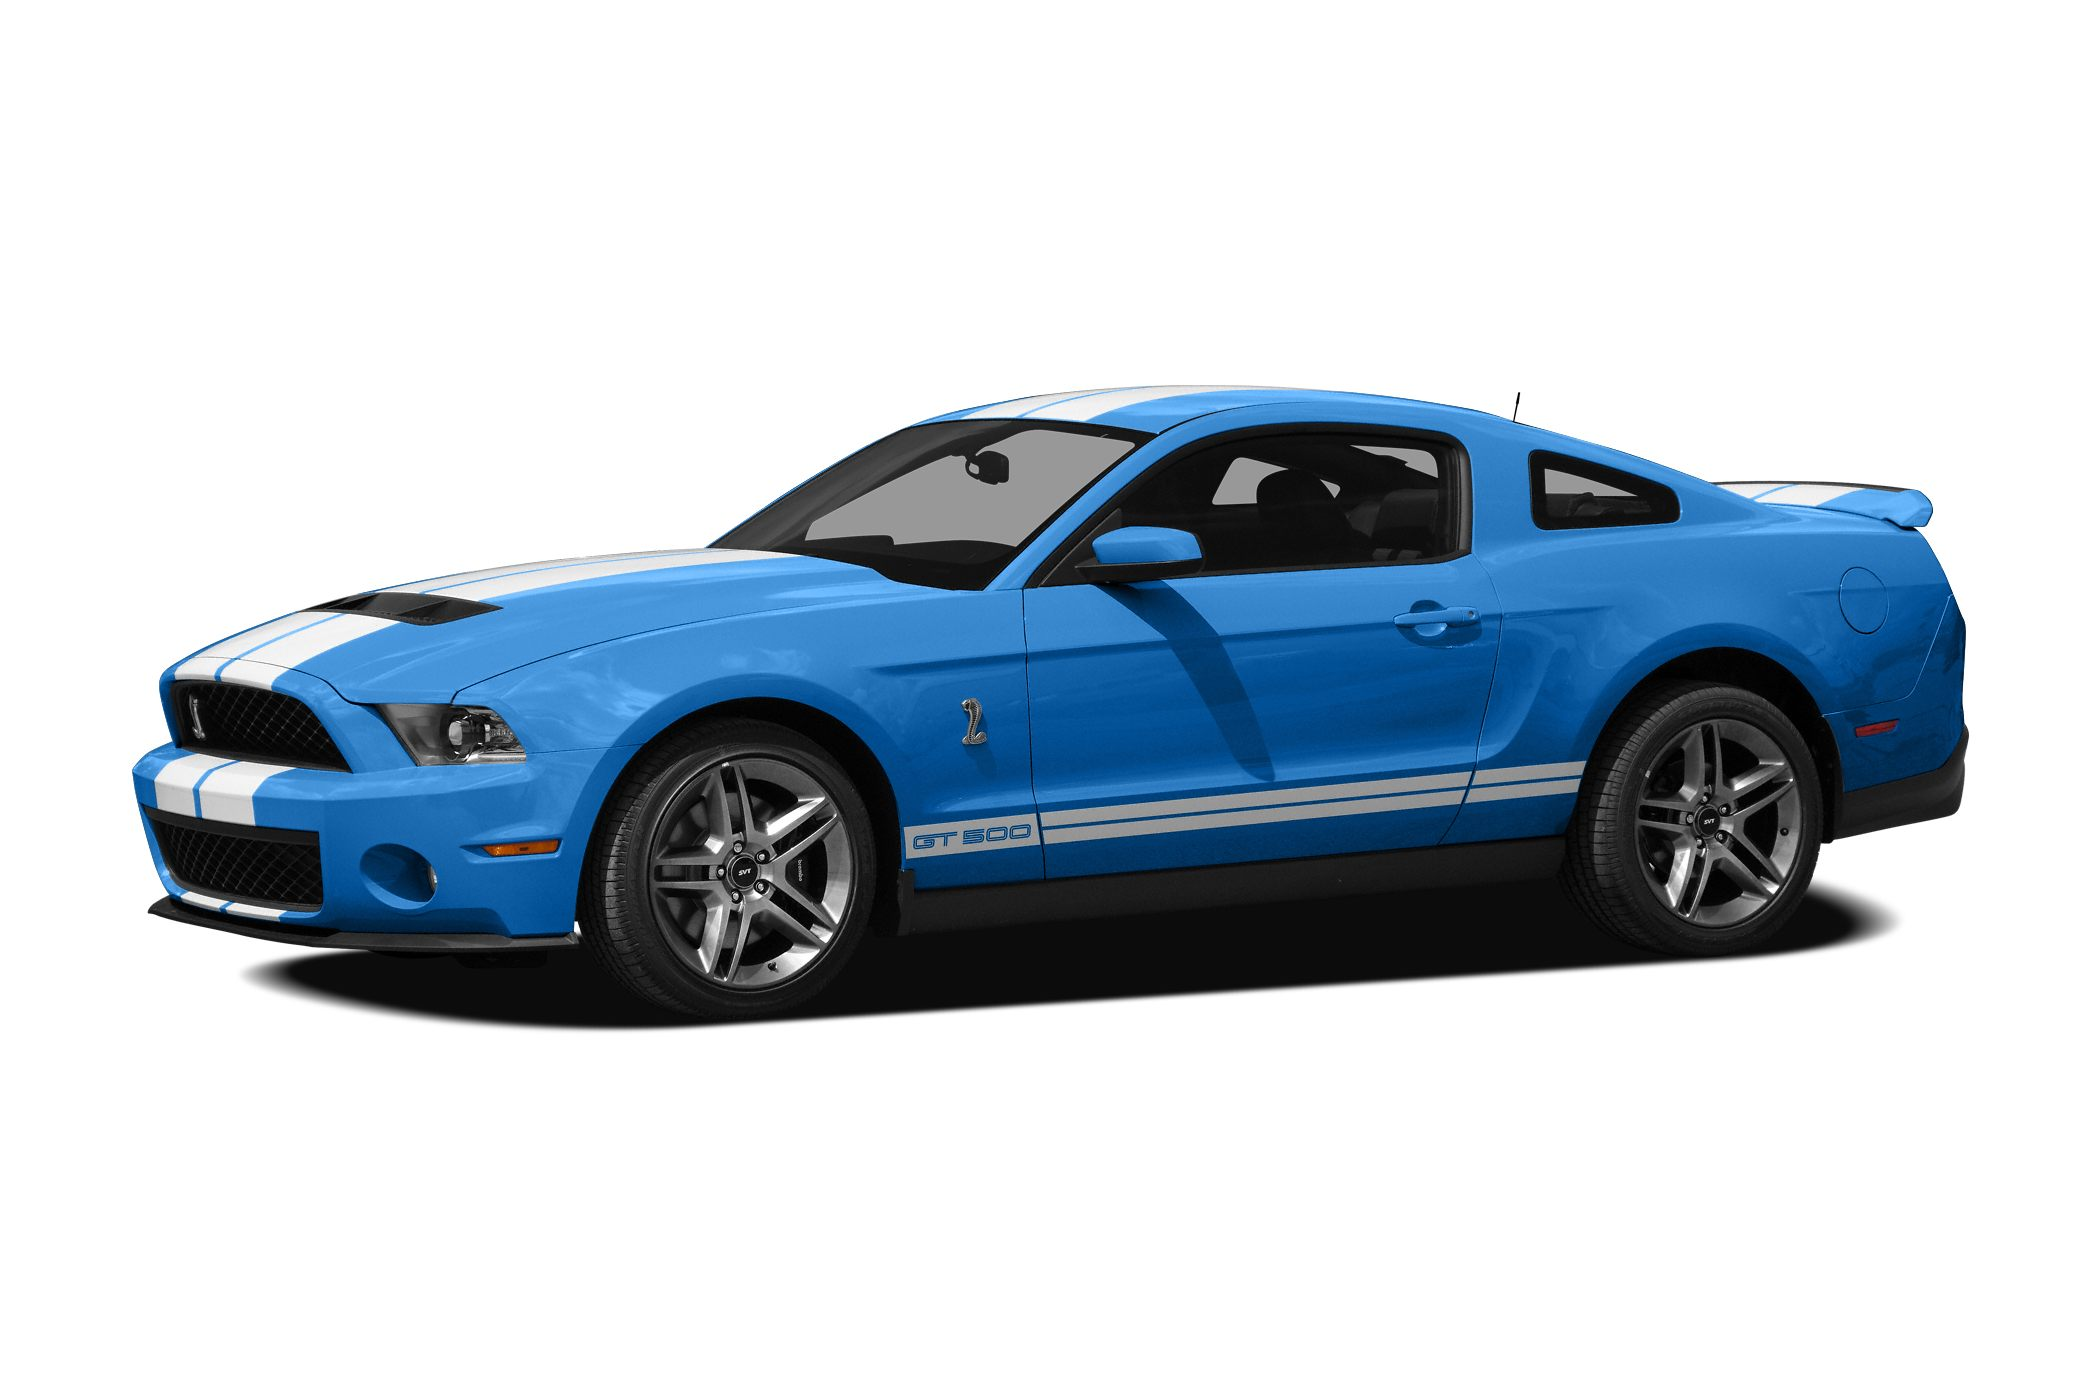 2012 Ford Mustang Shelby GT500 Coupe for sale in Scottsdale for $45,900 with 2,457 miles.